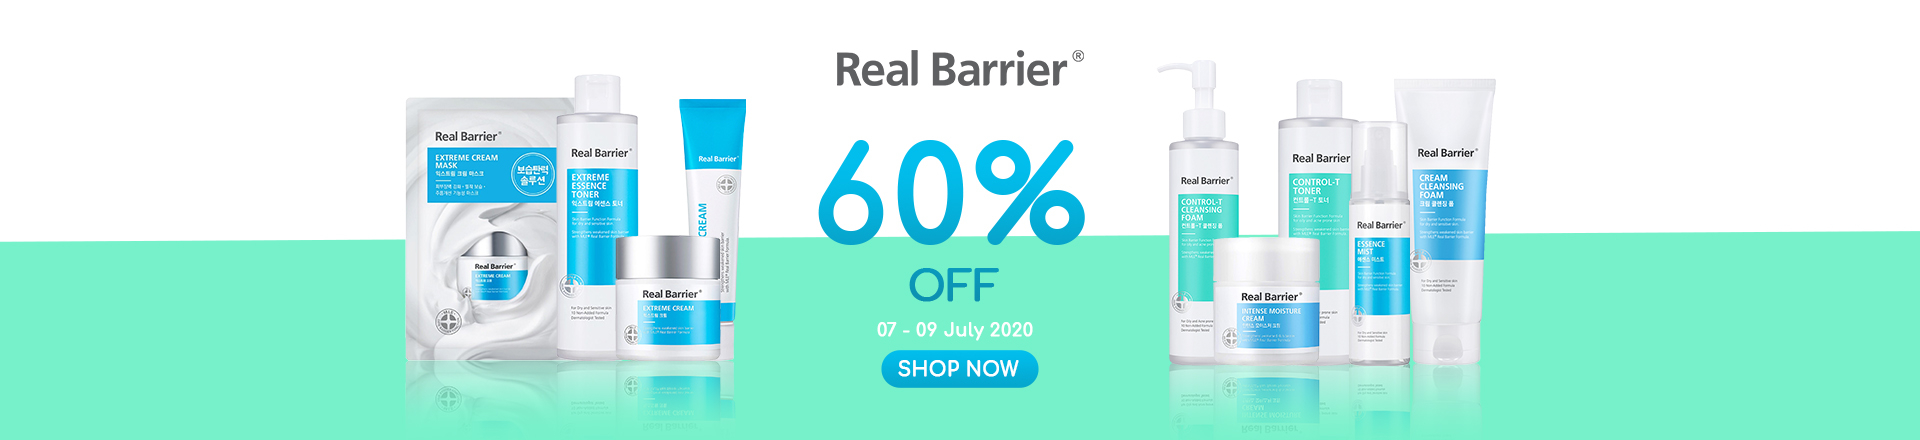 REAL BARRIER 60% OFF